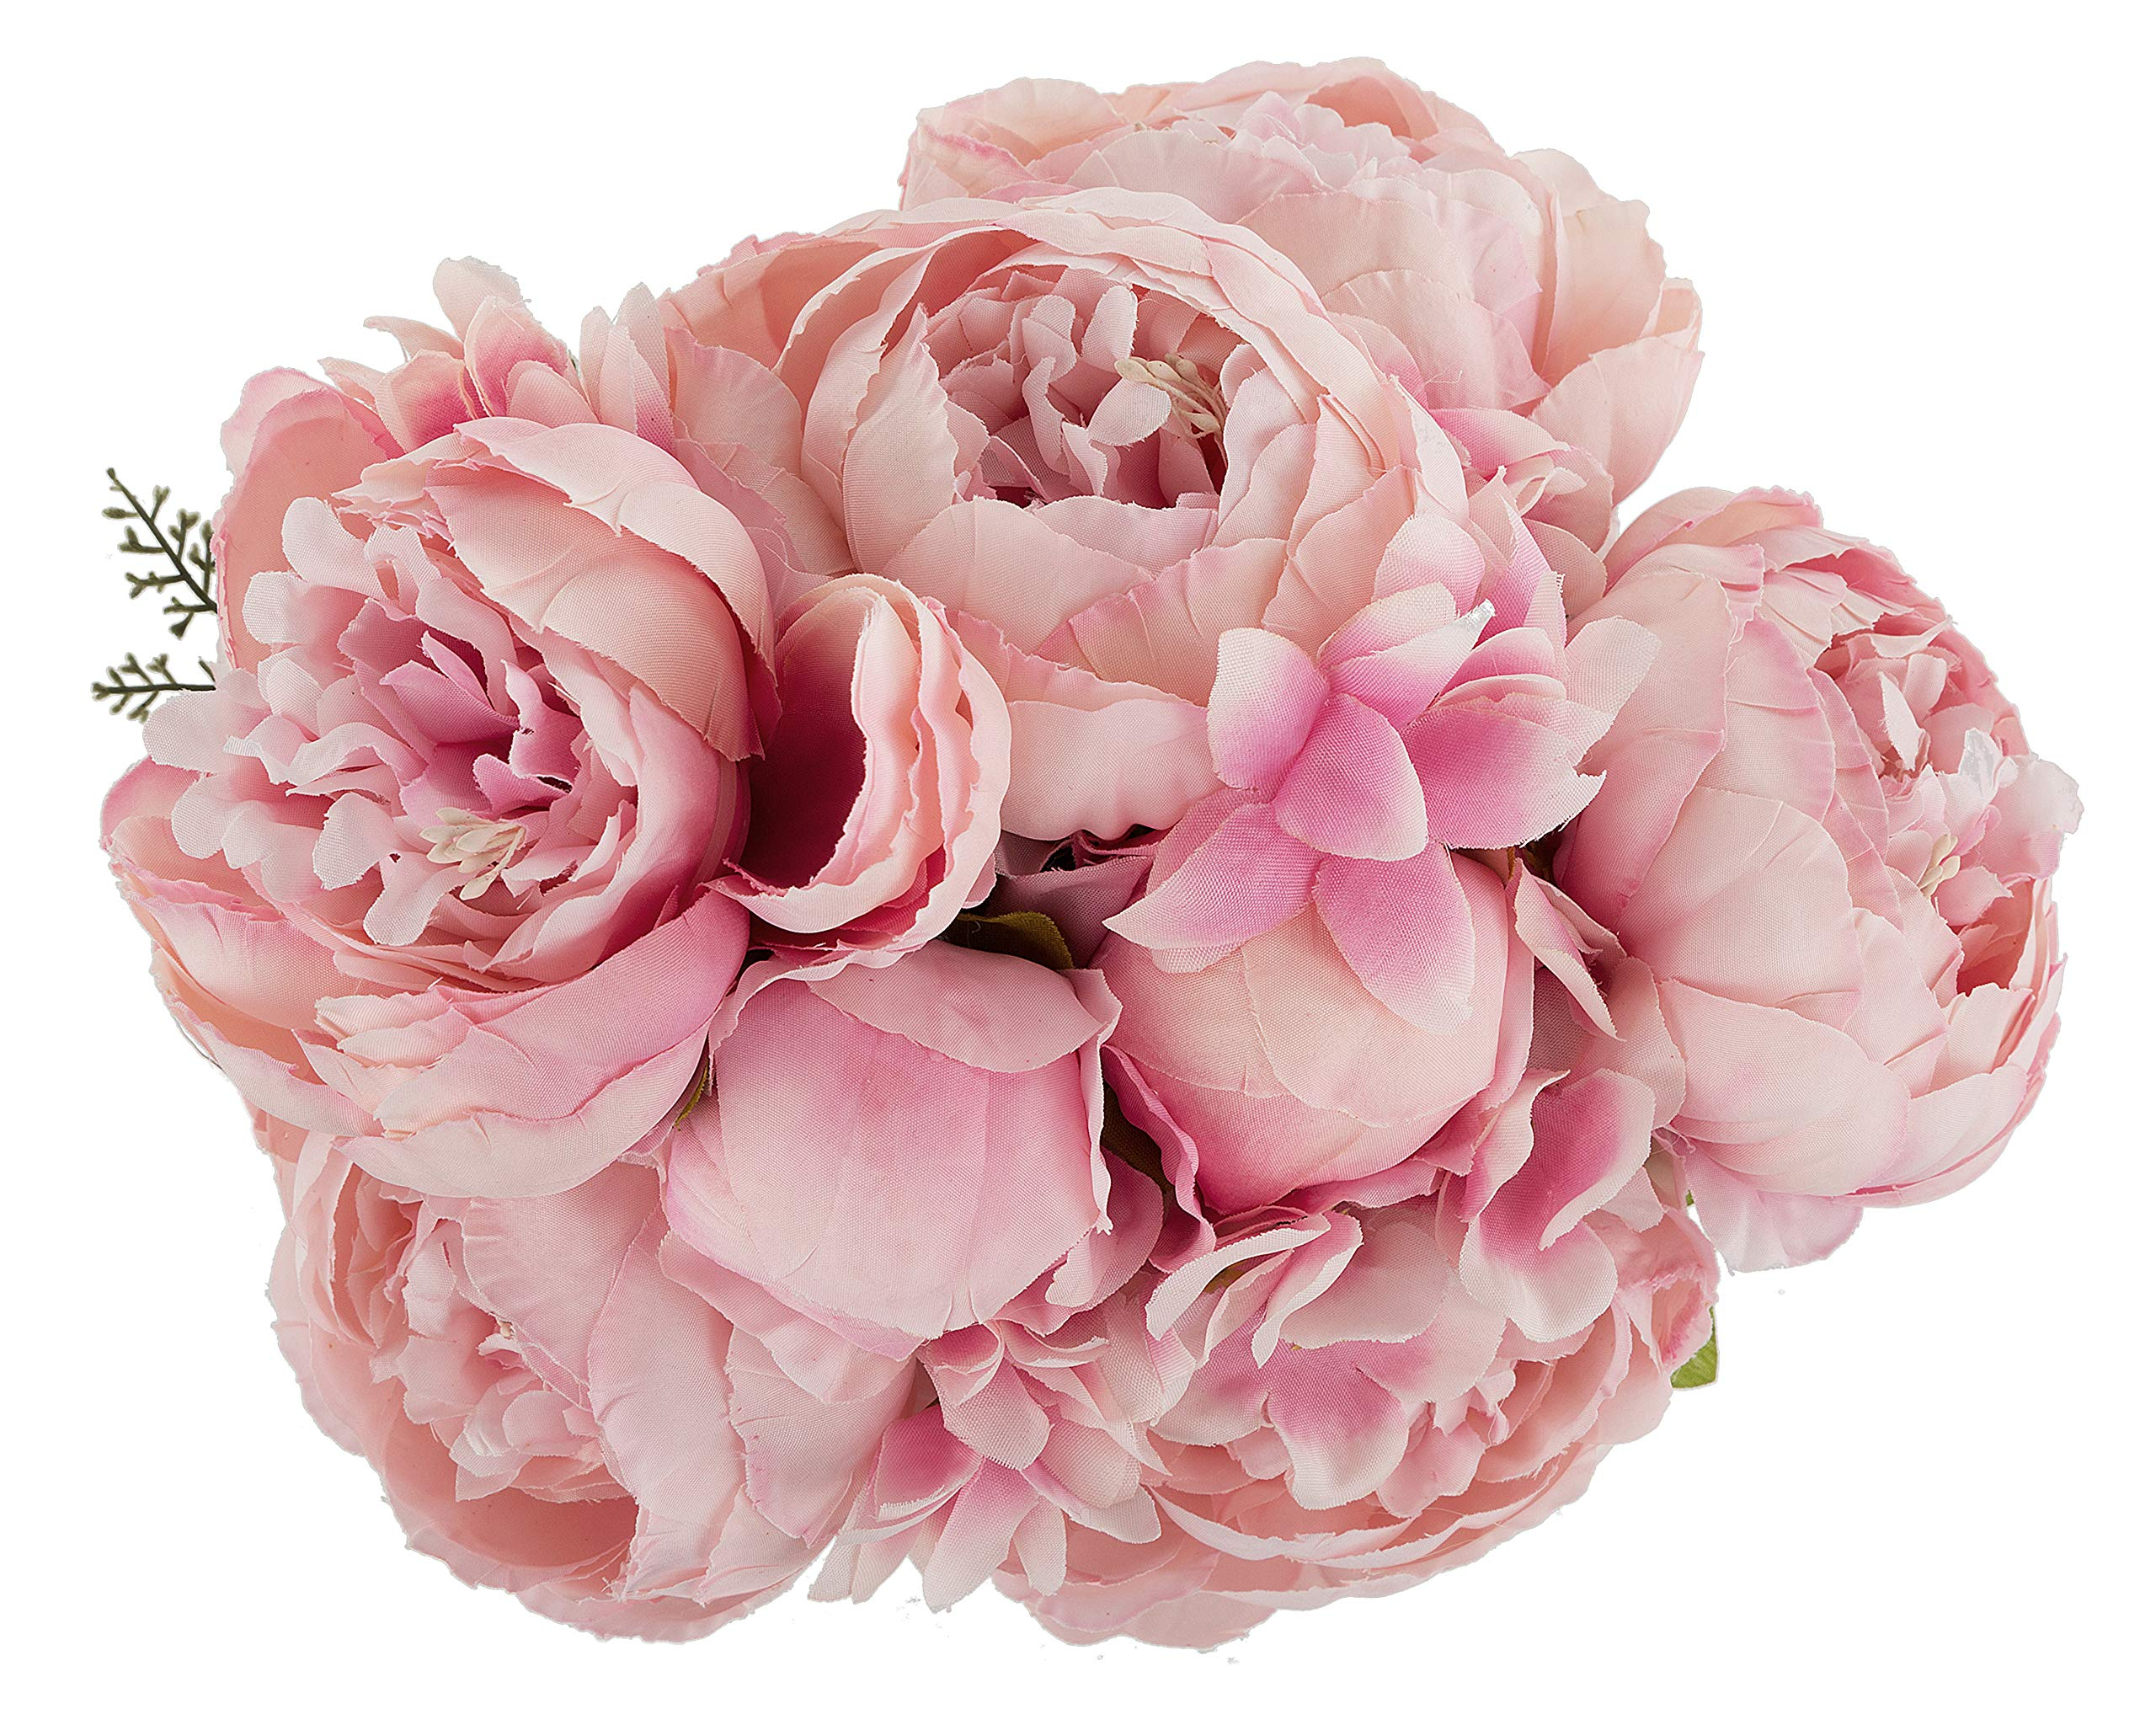 silk flower arrangements ezflowery 1 pack artificial peony silk flowers arrangement bouquet for wedding centerpiece room party home decoration, elegant vintage, perfect for spring, summer and occasions (1, soft pink)